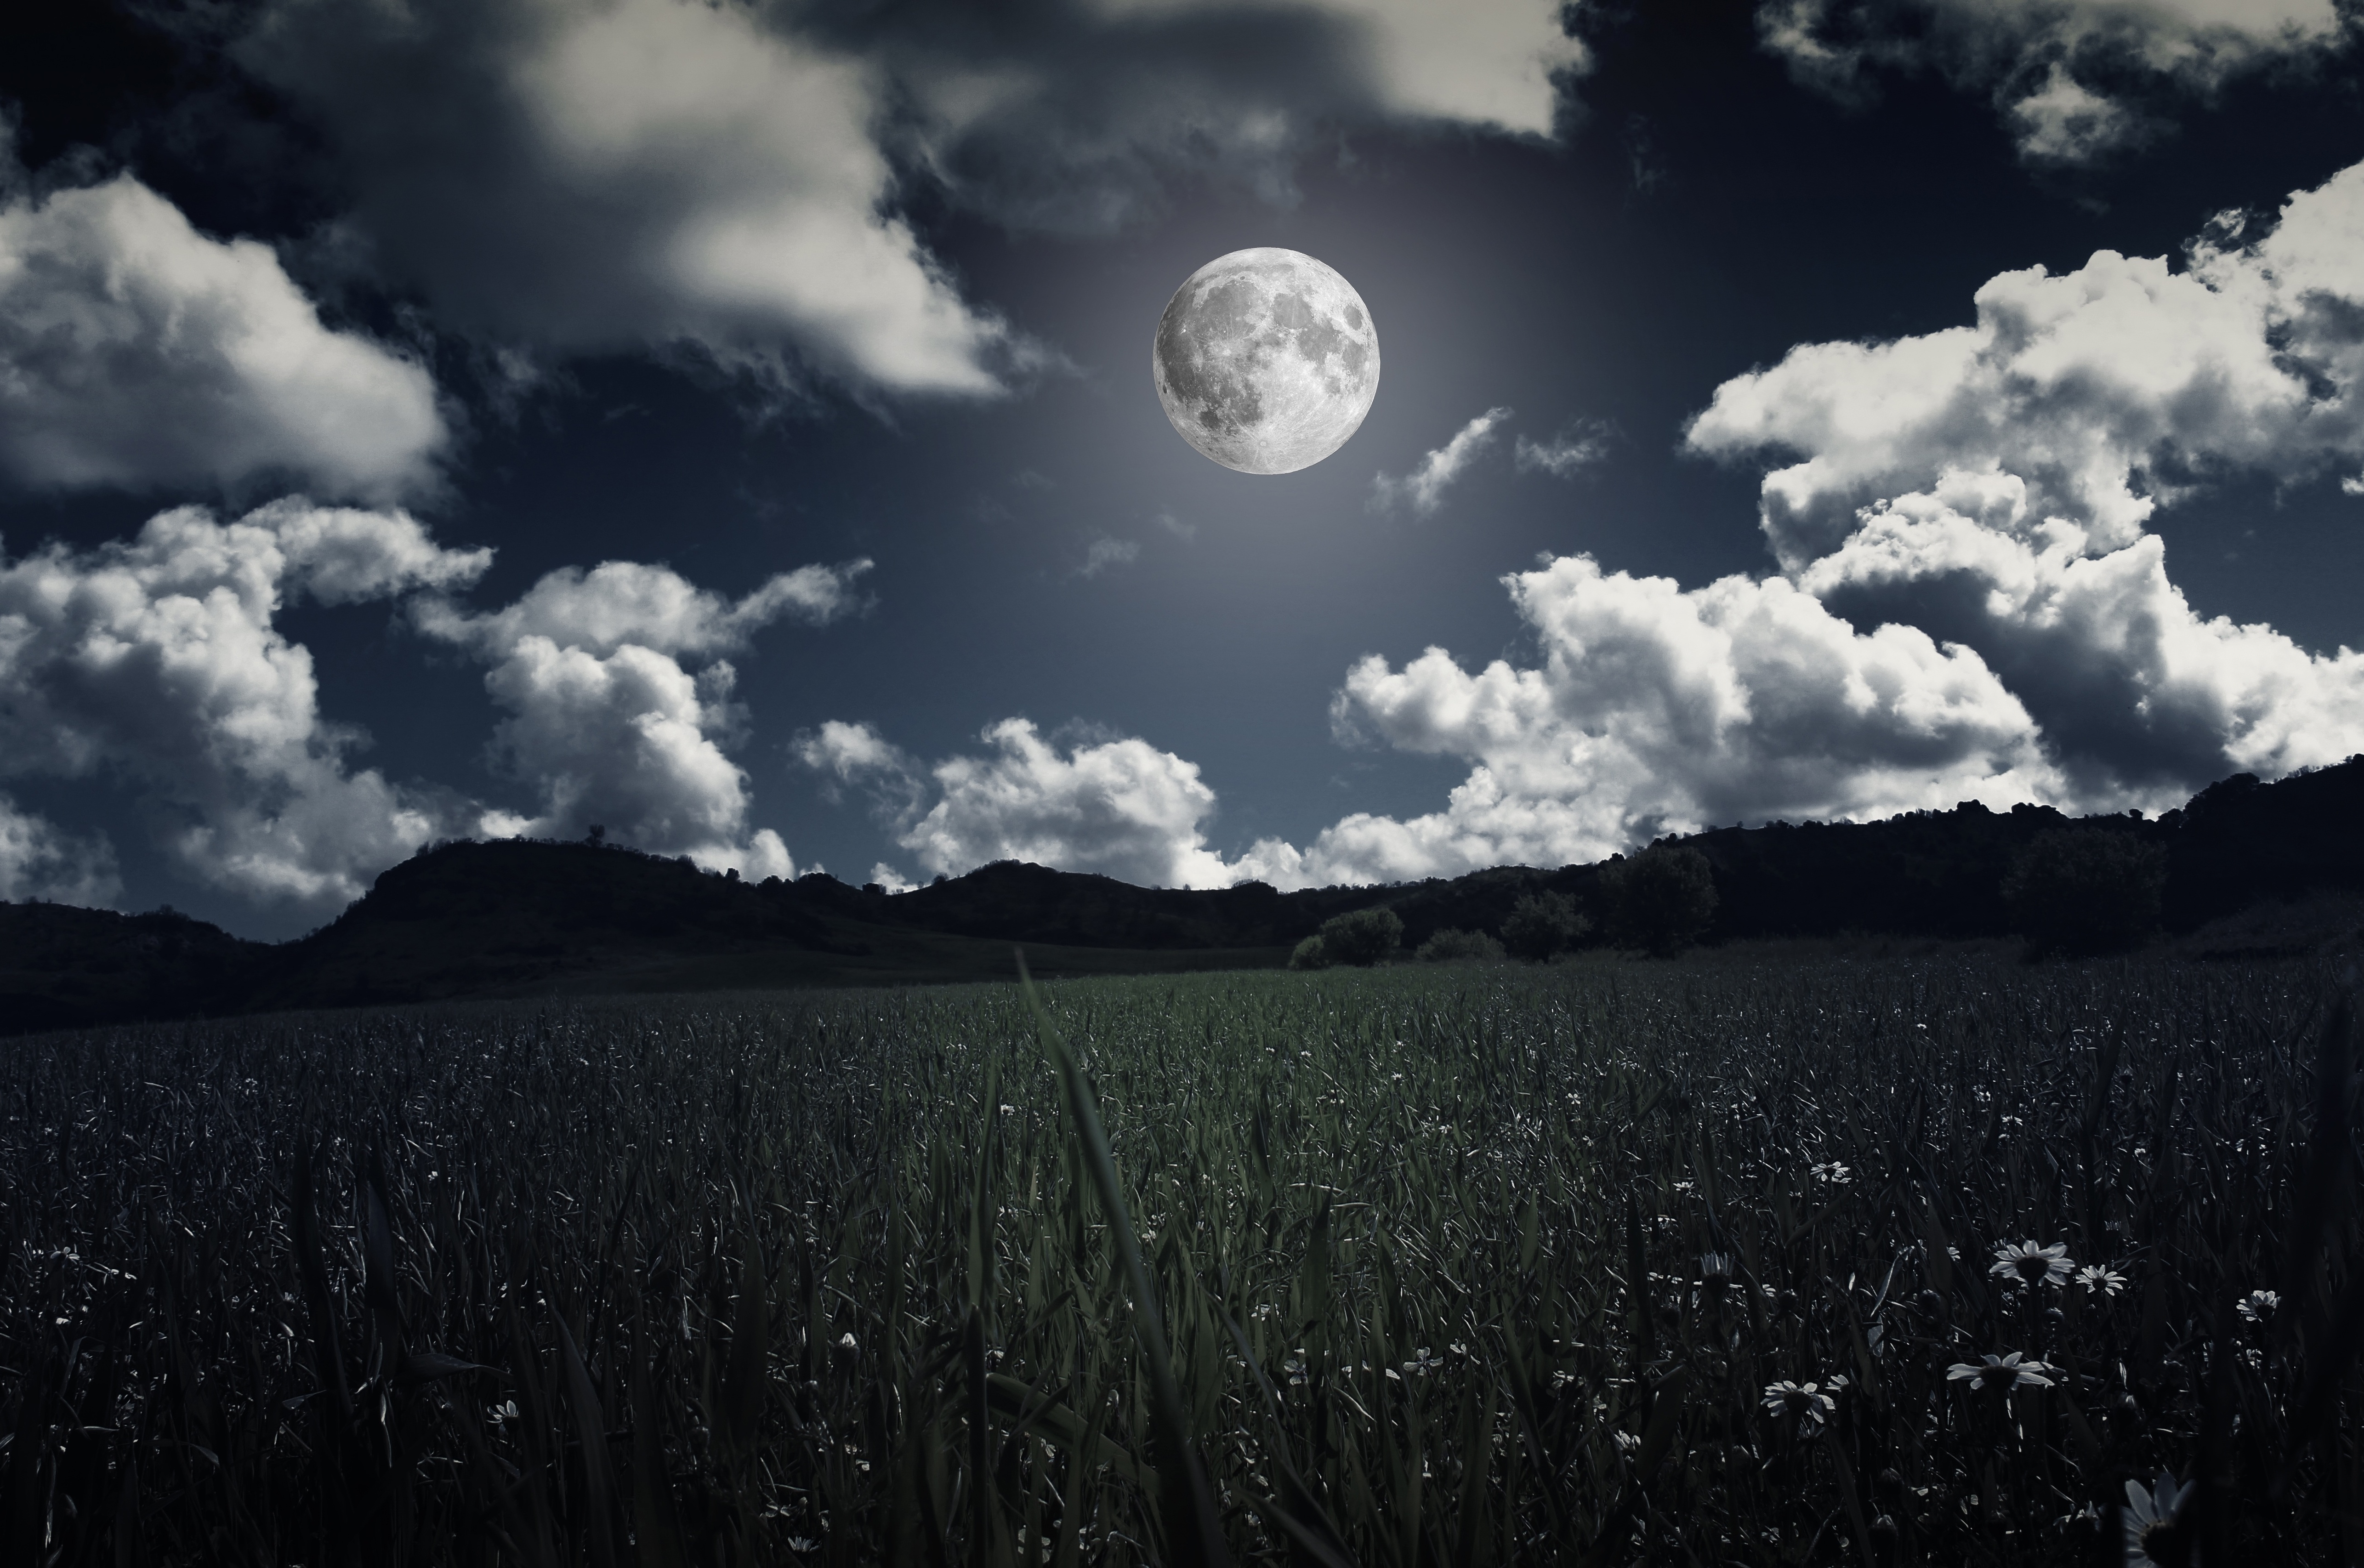 87312 Screensavers and Wallpapers Photoshop for phone. Download Nature, Grass, Clouds, Moon, Field, Photoshop, Full Moon pictures for free